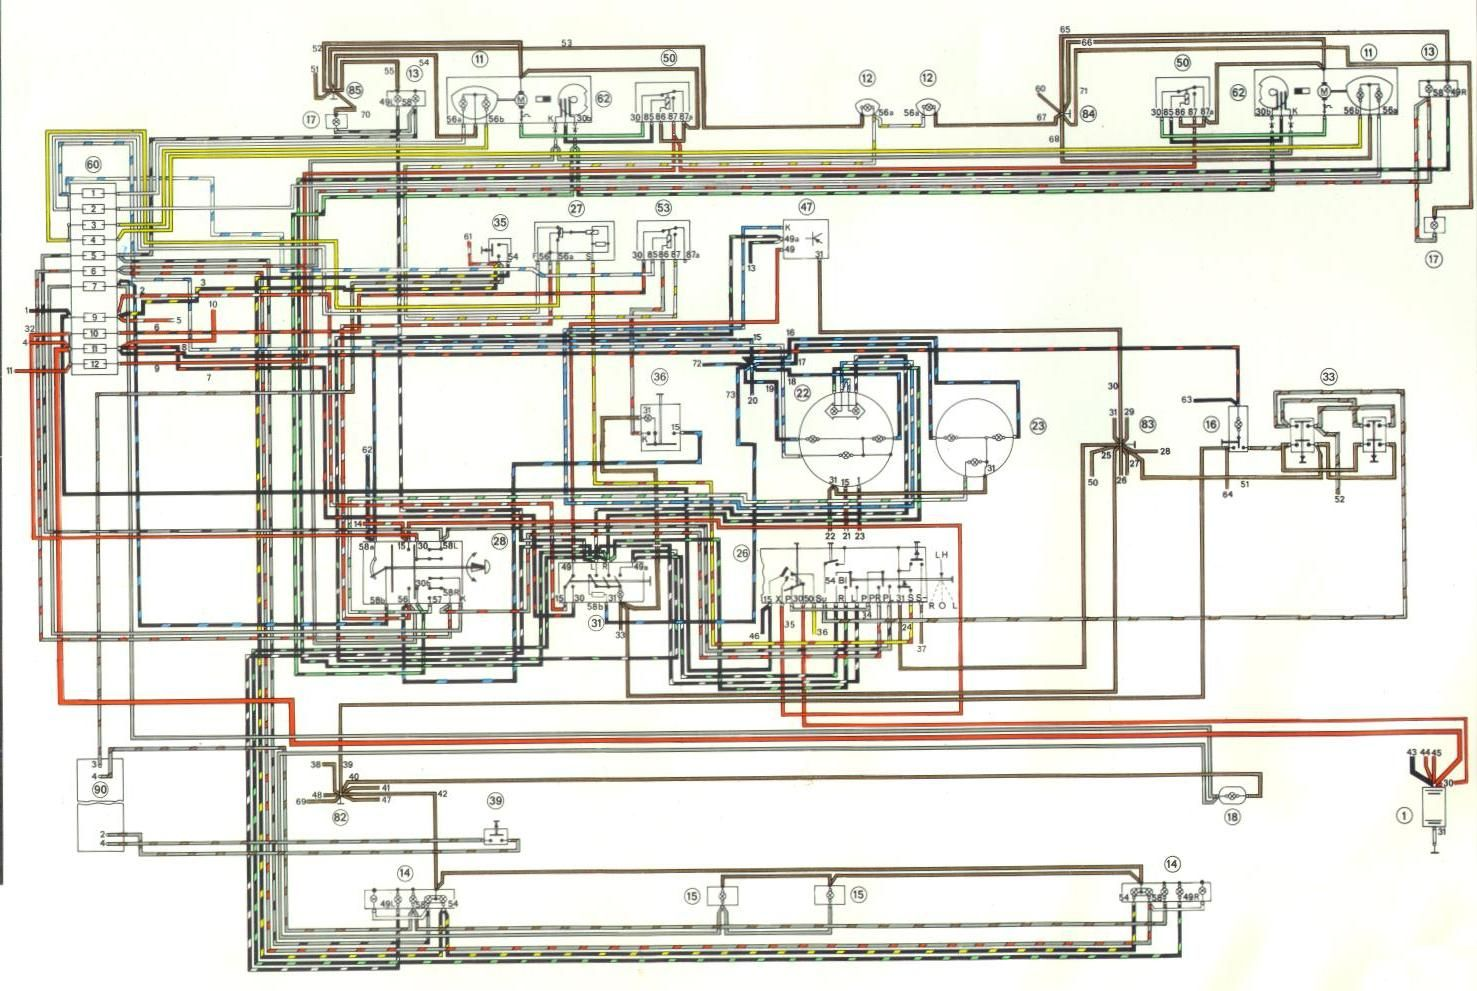 [GJFJ_338]  Electrical Diagram 73 Porsche 914 part 1 | Porsche 914, Electrical diagram,  Porsche | Porsche 914 6 Wiring Diagram |  | Pinterest